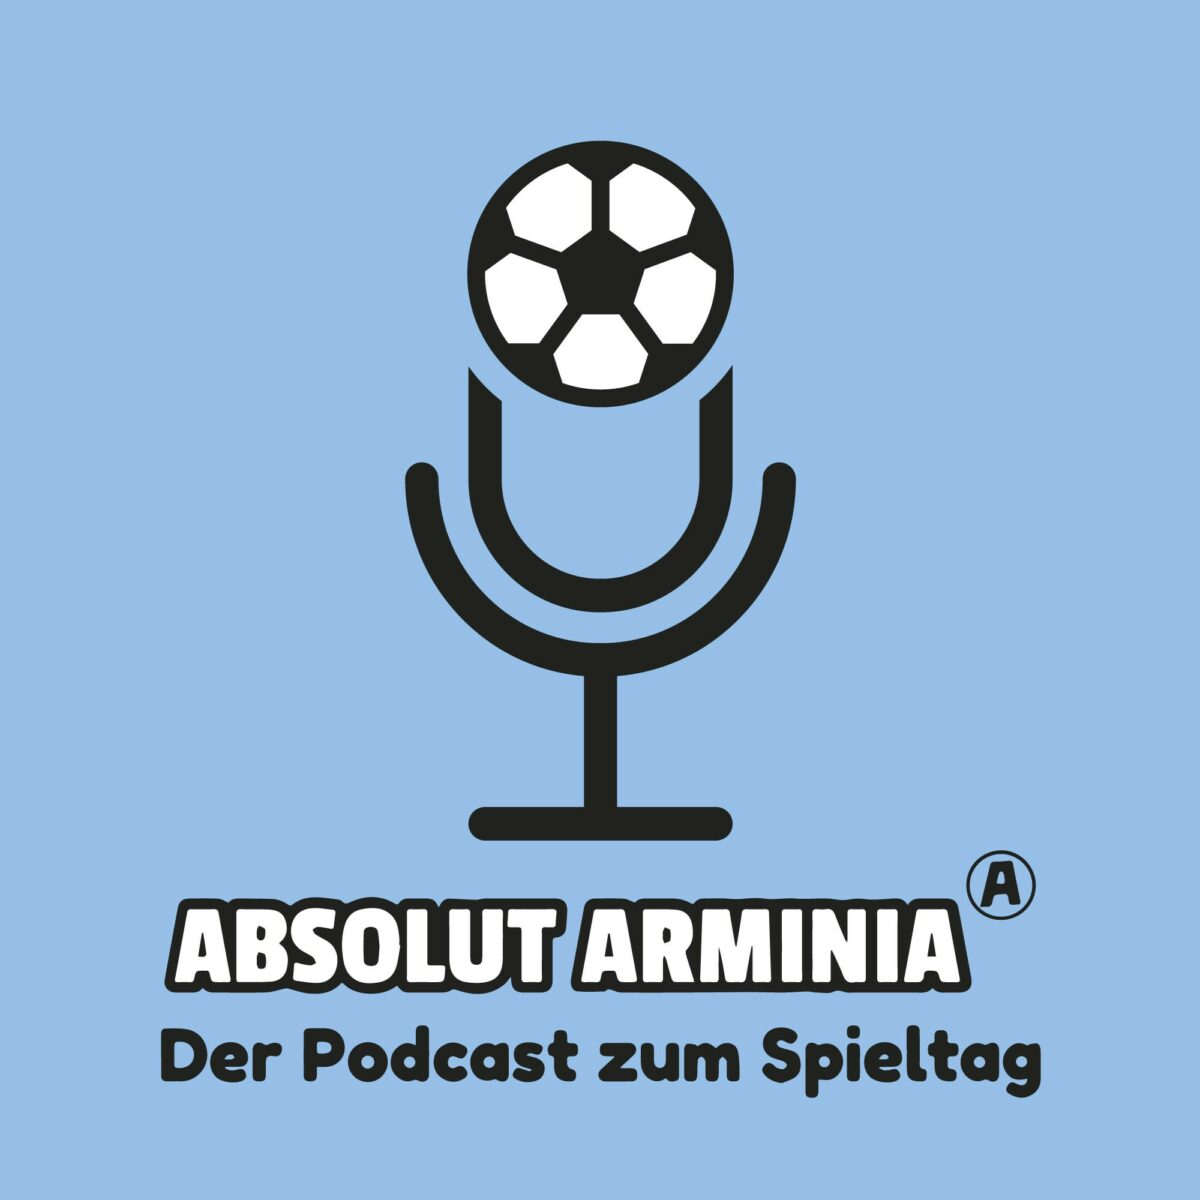 absolut-arminia-podcast